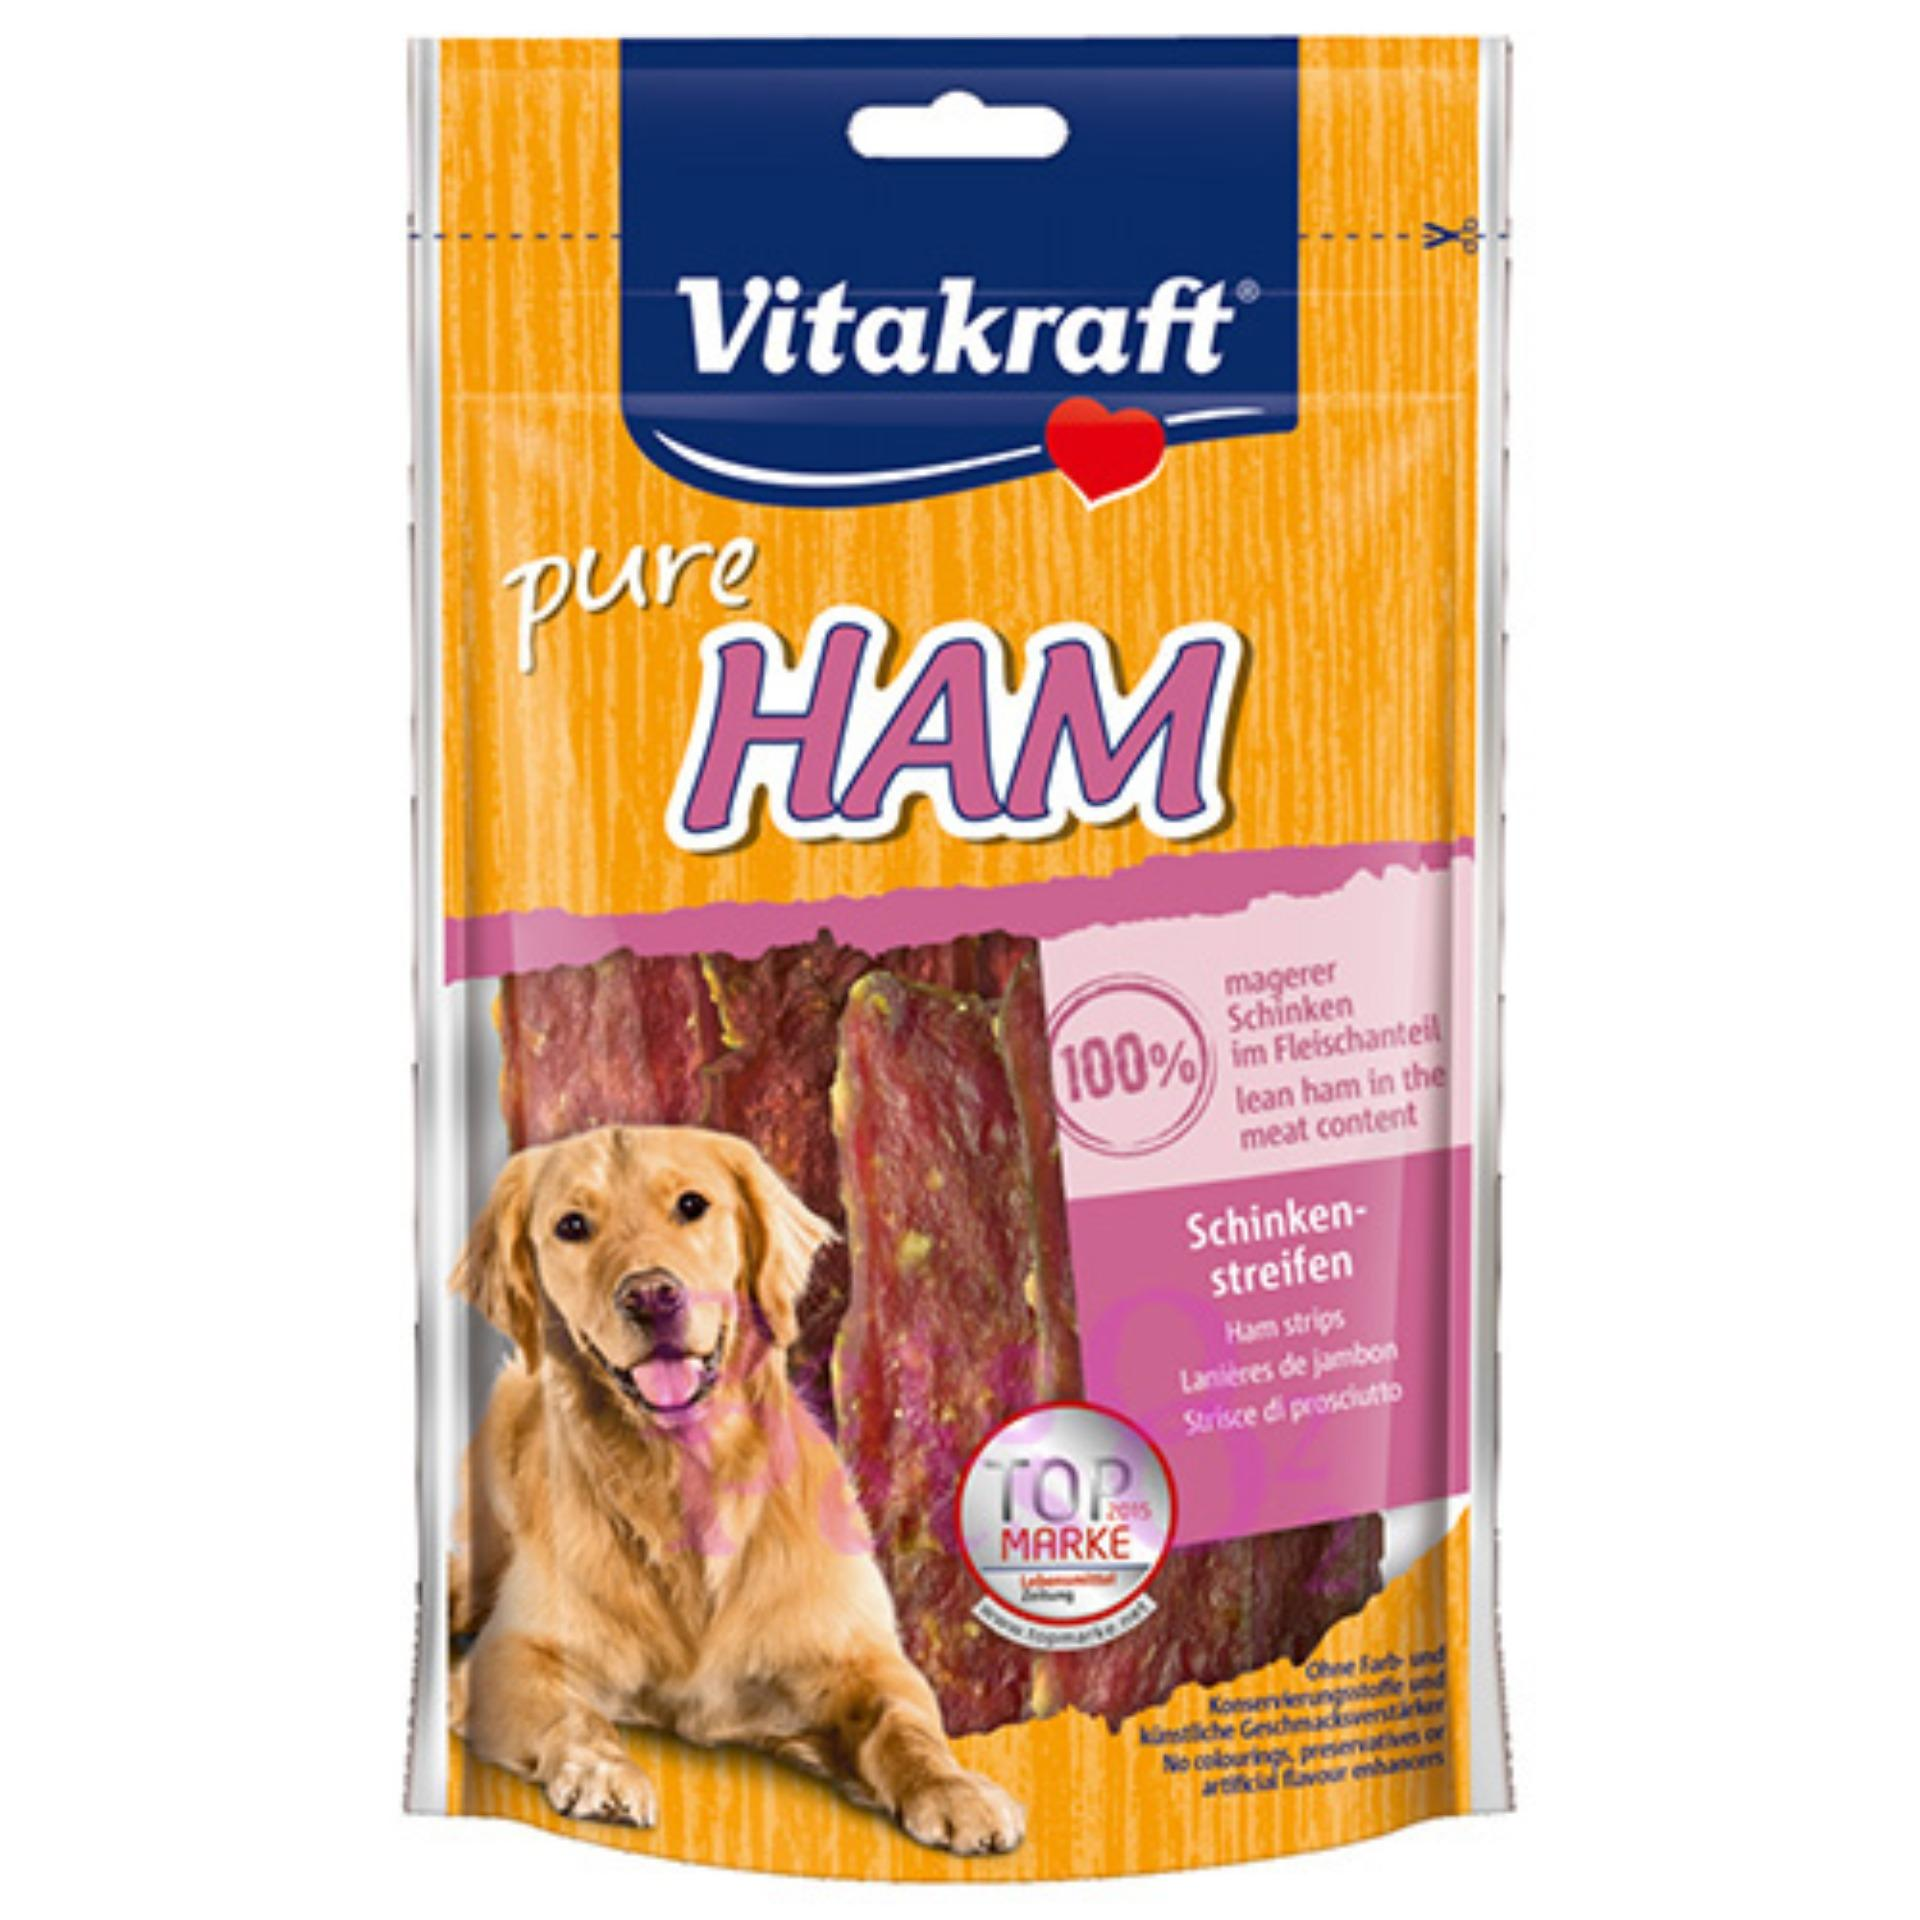 Vitakraft Ham Strips 80g (Buy 1 Free 1)